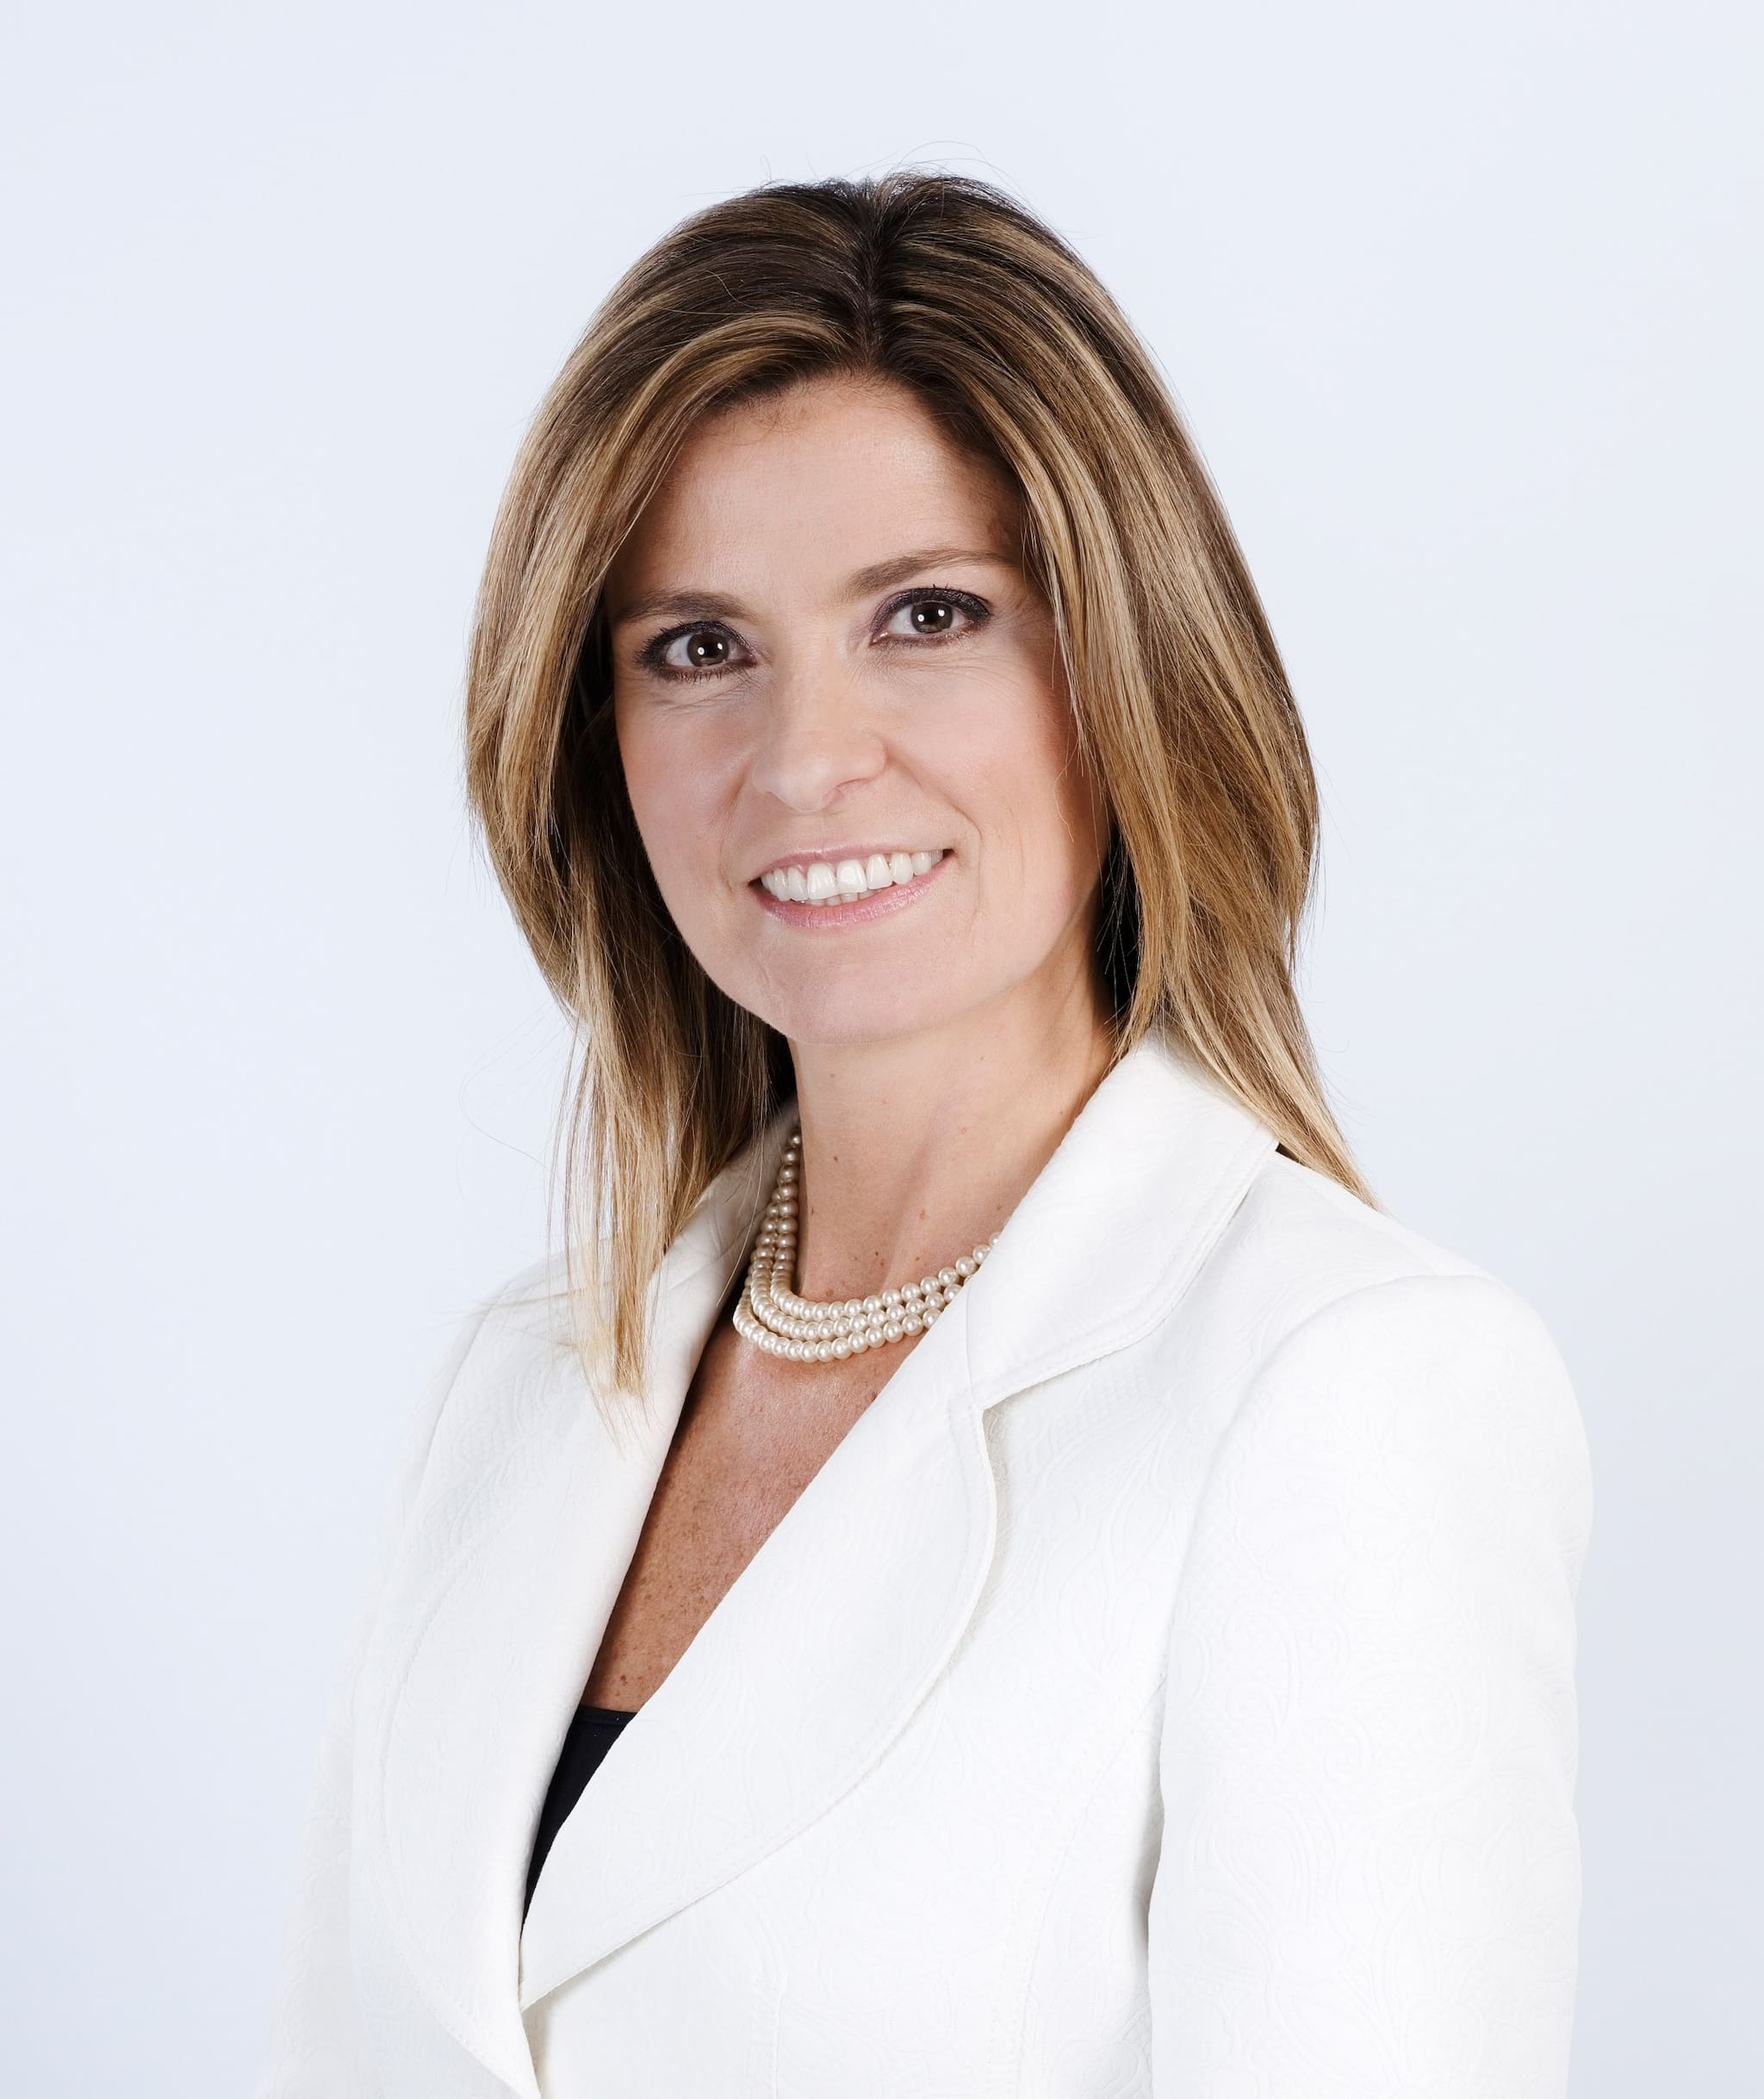 Garcia is the newest Nissan Asia & Ocenia VP